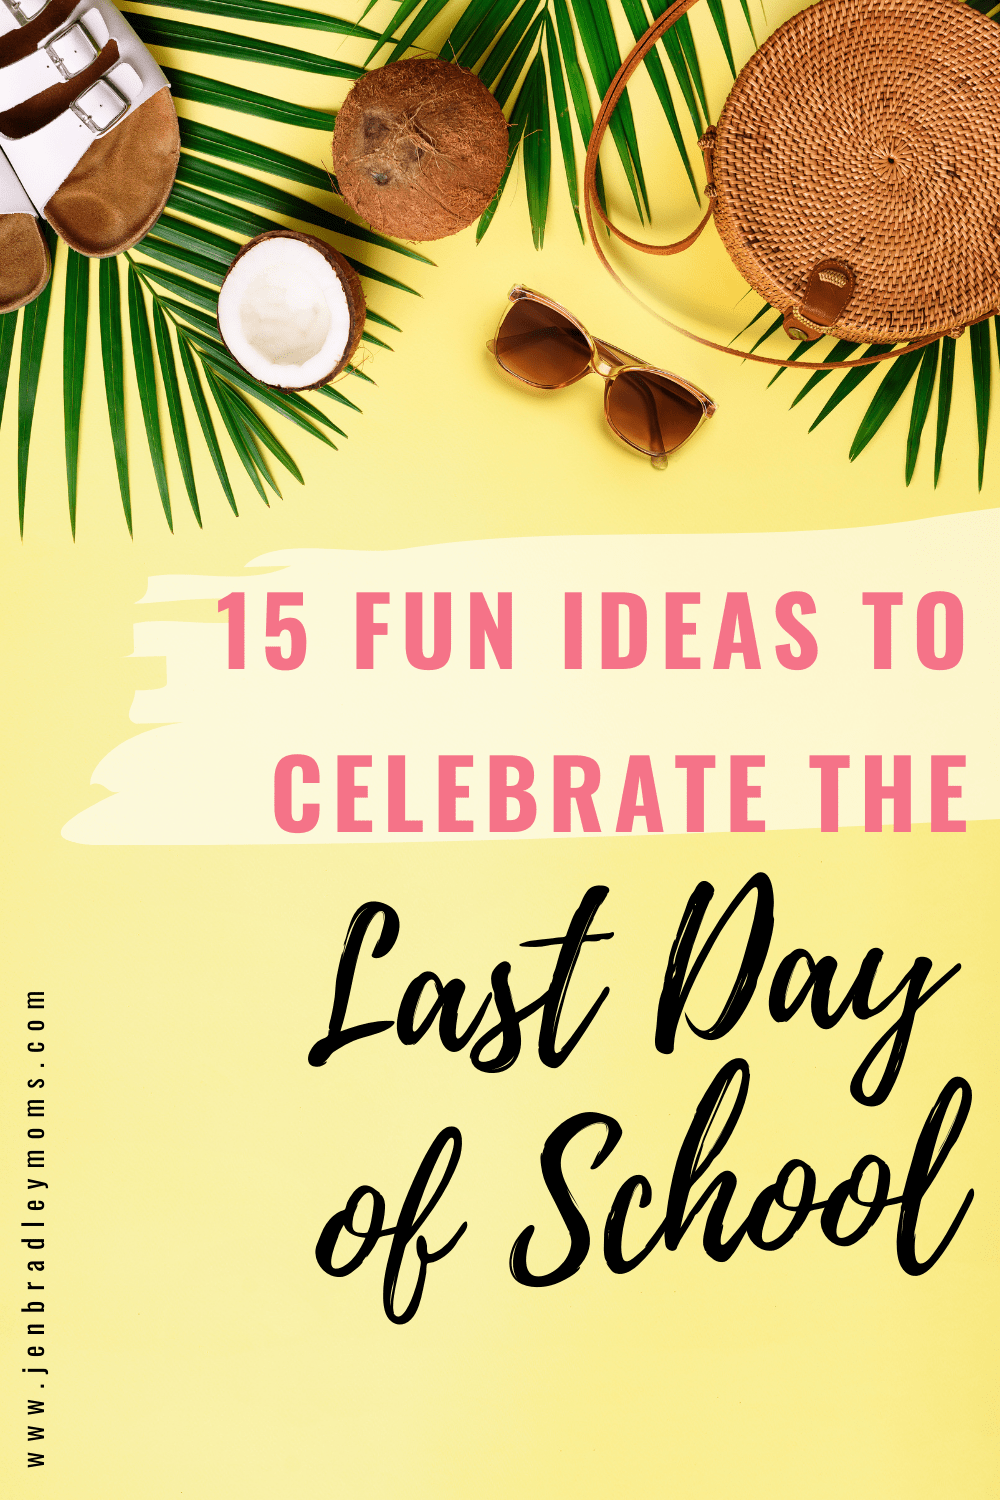 15 Fun Ideas for the Last Day of School with Your Kids